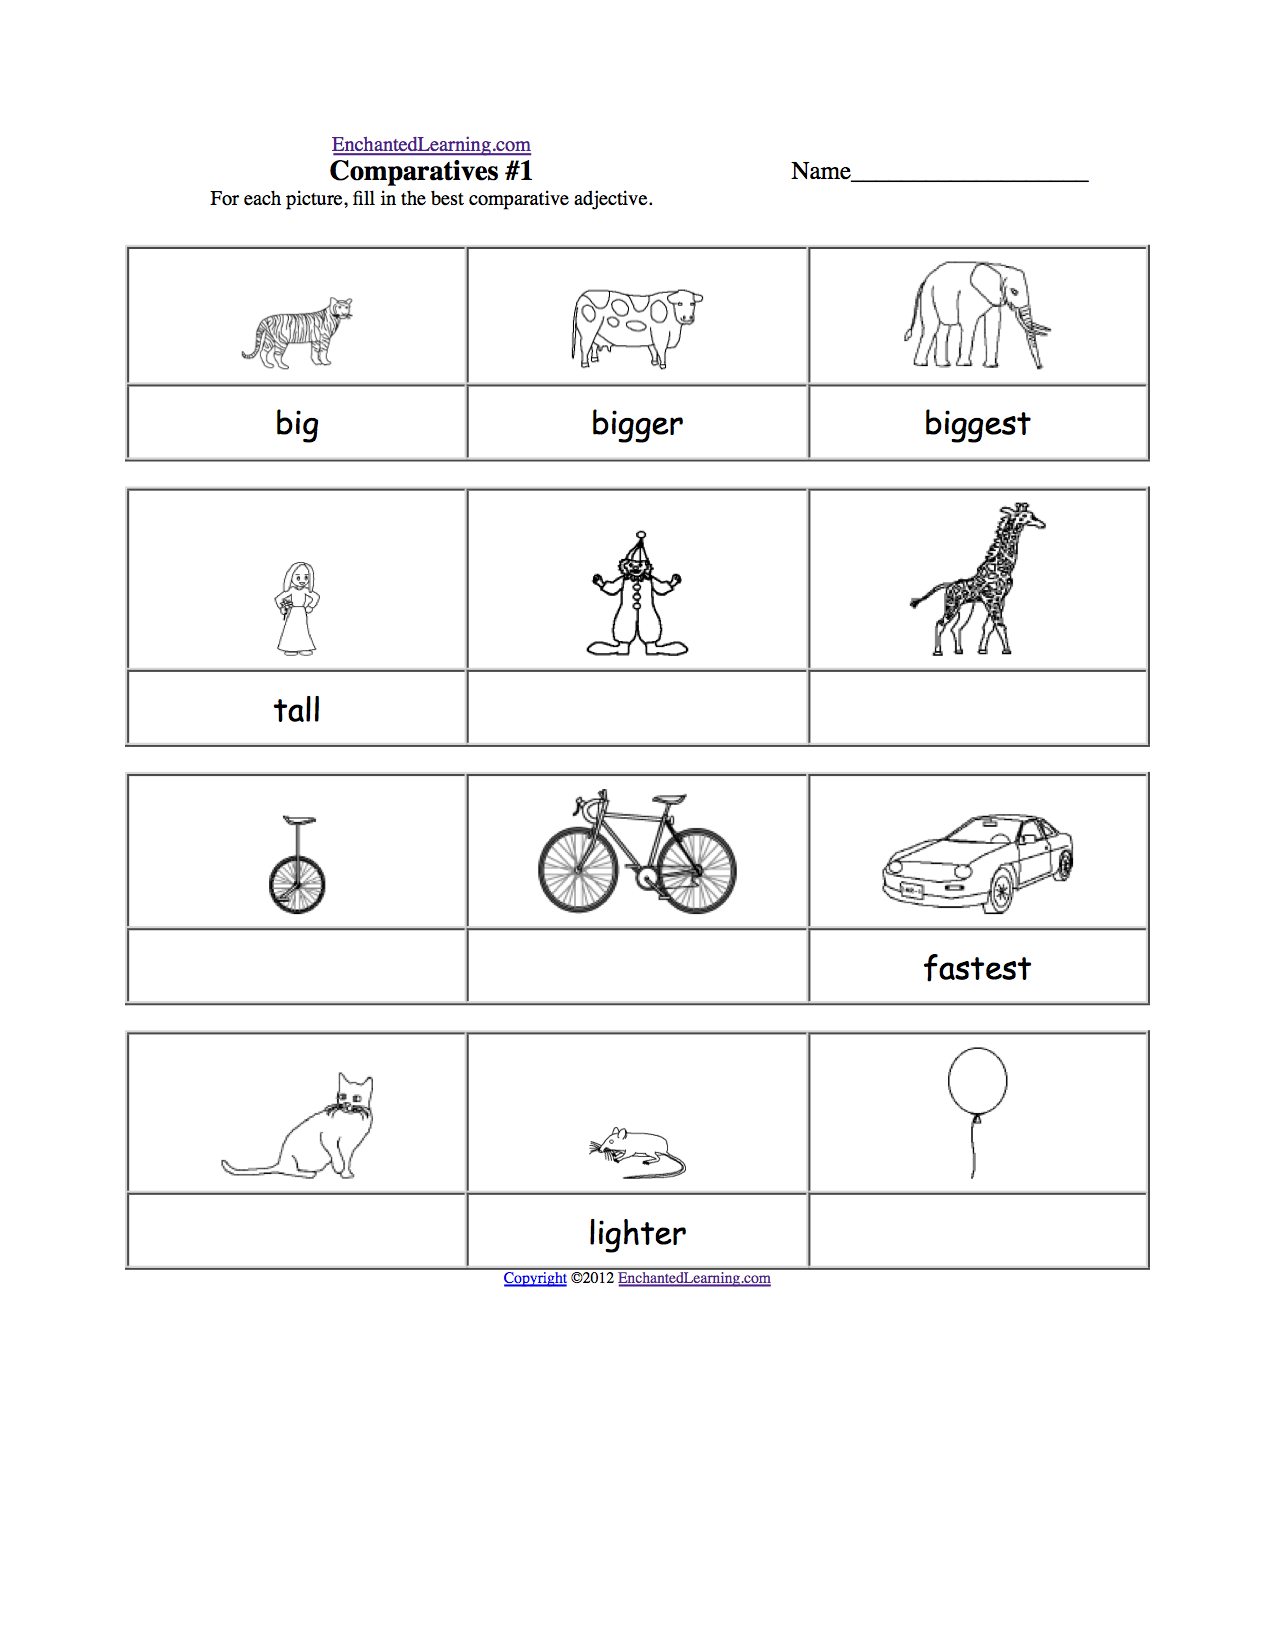 Aldiablosus  Surprising Adjective Activities And Worksheets Enchantedlearningcom With Likable Diabetic Meal Planning Worksheet Besides Proper Nouns Worksheet St Grade Furthermore Excel Budget Worksheets With Divine Math Area Worksheets Also Idiom Worksheets For Th Grade In Addition Spanish Months Of The Year Worksheet And Gujarati Alphabet Worksheets As Well As American Symbols Worksheets Additionally Days Of The Week Printable Worksheets From Enchantedlearningcom With Aldiablosus  Likable Adjective Activities And Worksheets Enchantedlearningcom With Divine Diabetic Meal Planning Worksheet Besides Proper Nouns Worksheet St Grade Furthermore Excel Budget Worksheets And Surprising Math Area Worksheets Also Idiom Worksheets For Th Grade In Addition Spanish Months Of The Year Worksheet From Enchantedlearningcom